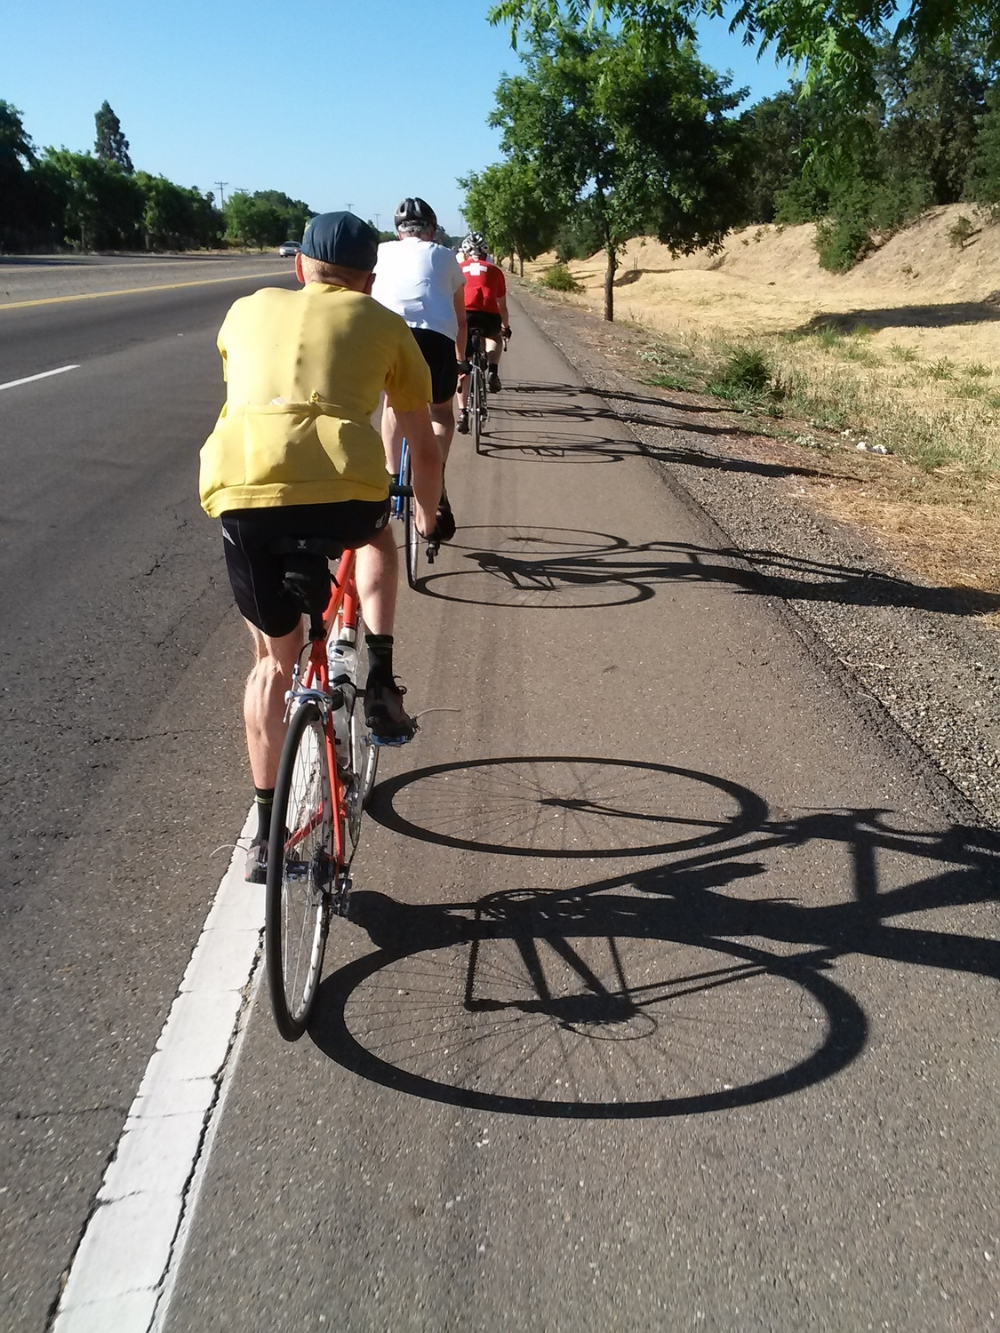 A view of the 6th Annual Freedom Ride (July 4th), organized by my boyfriend, Mel, the man in yellow. I got a good taste of the ride even if I didn't complete all 65 miles of it.